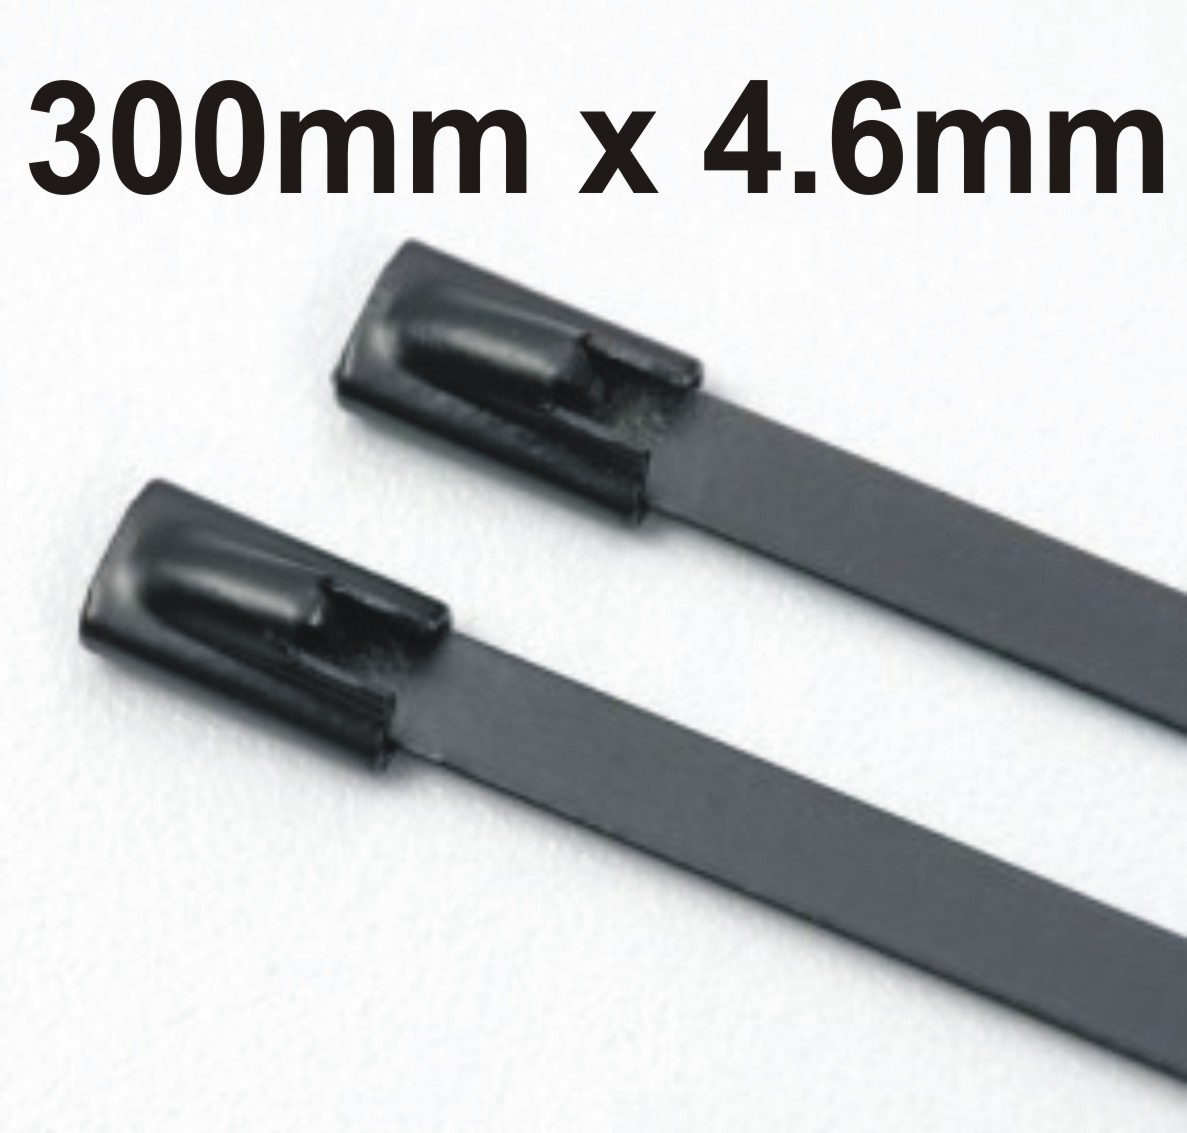 Stainless Steel Cable Ties Coated 300mm x 4.6mm